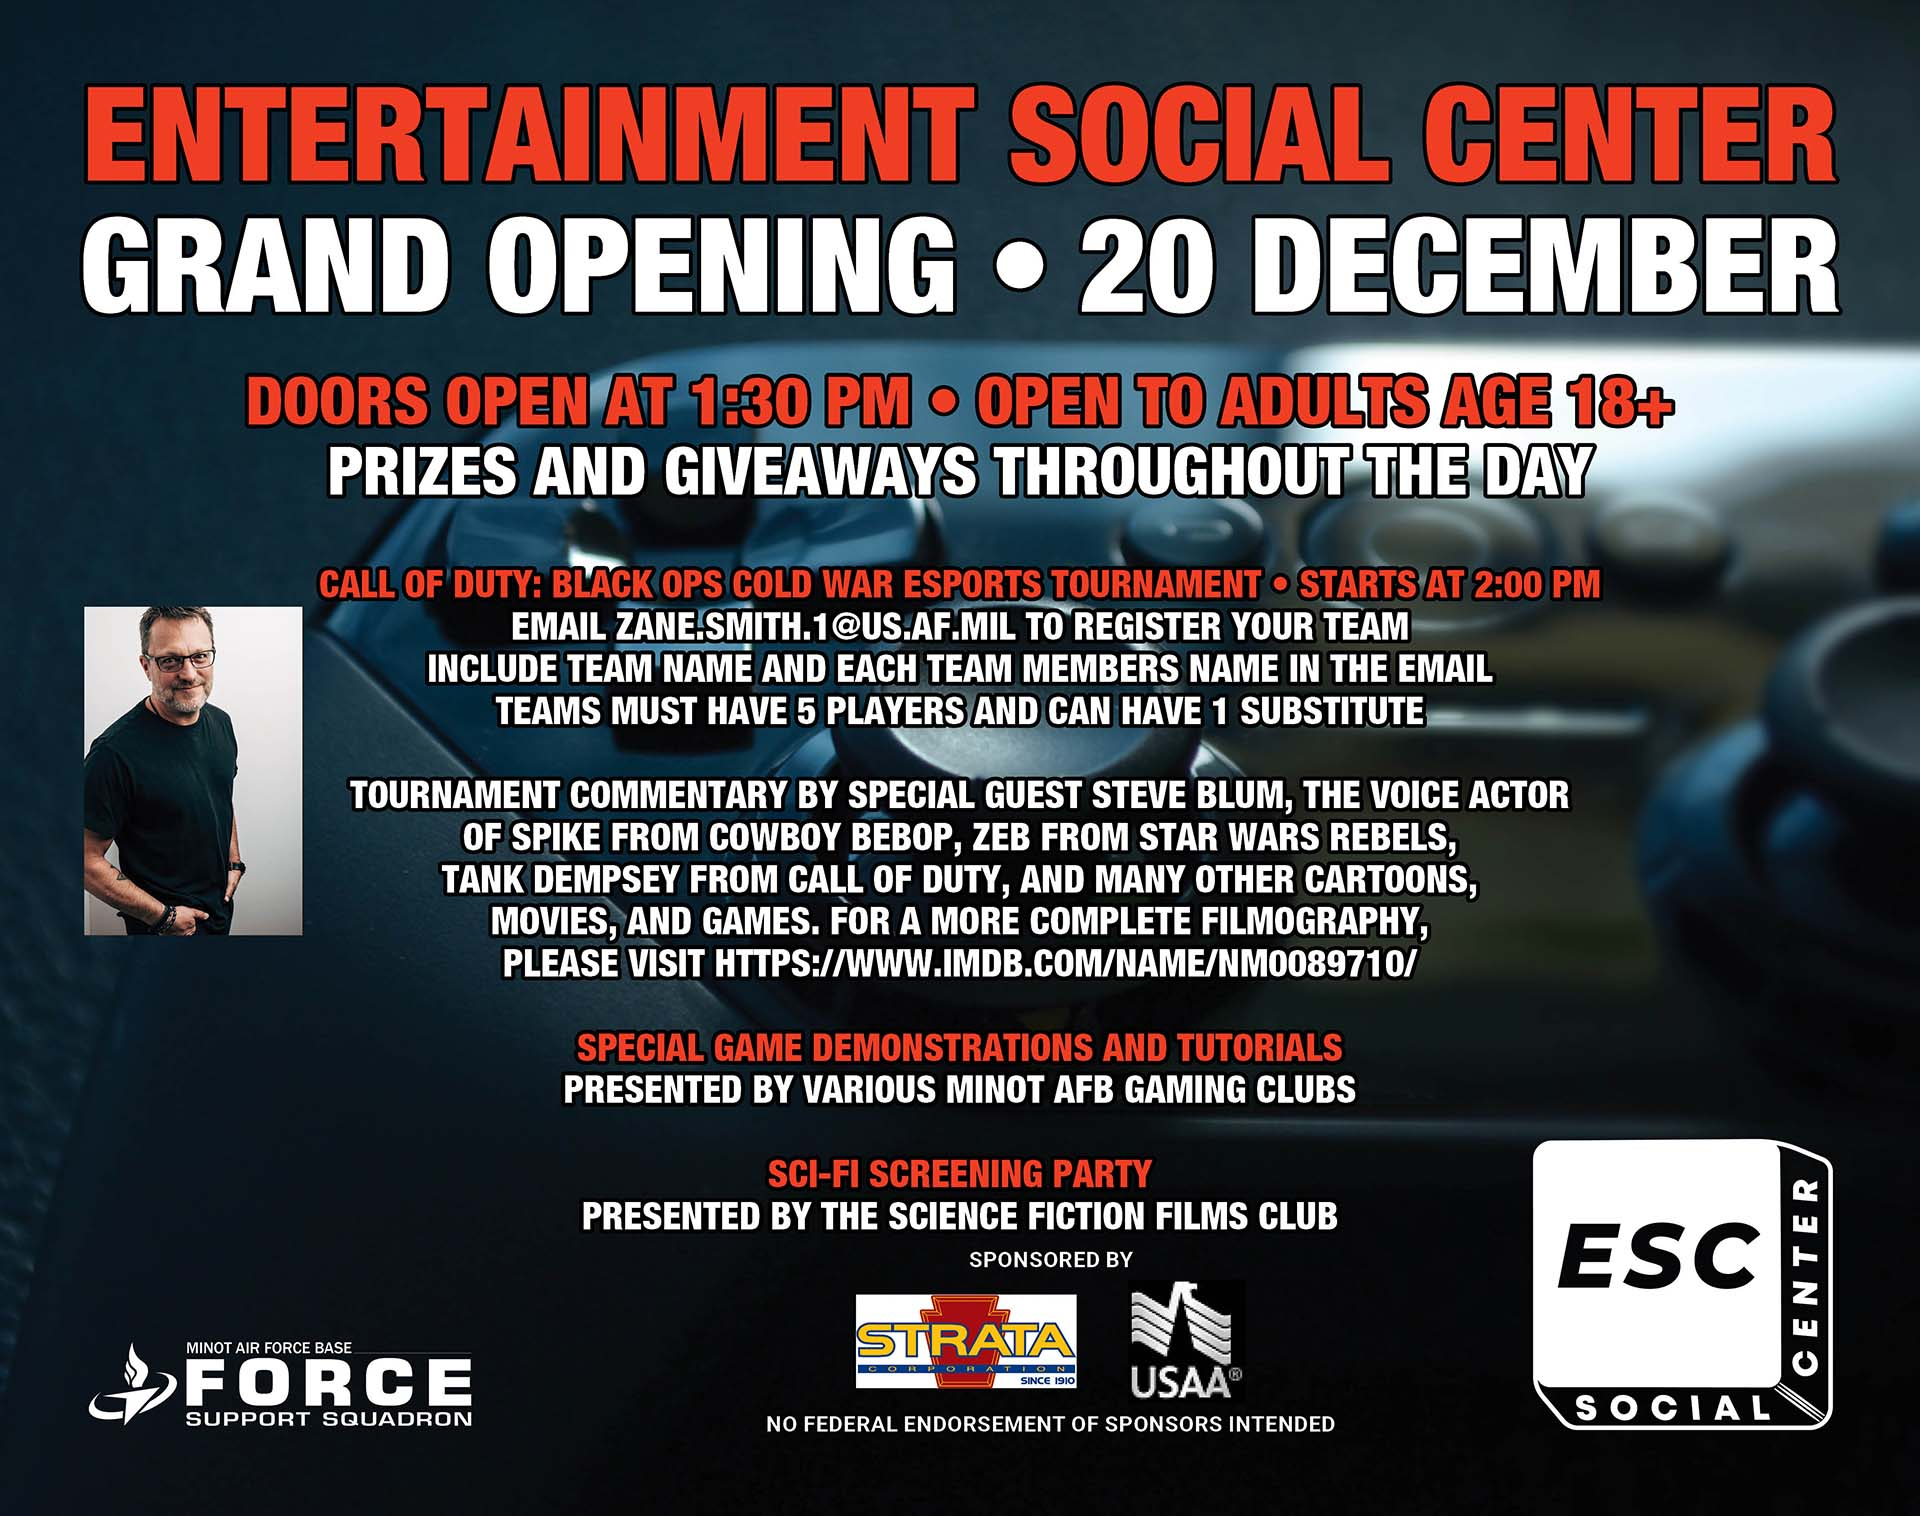 Entertainment Social Center - Grand Opening